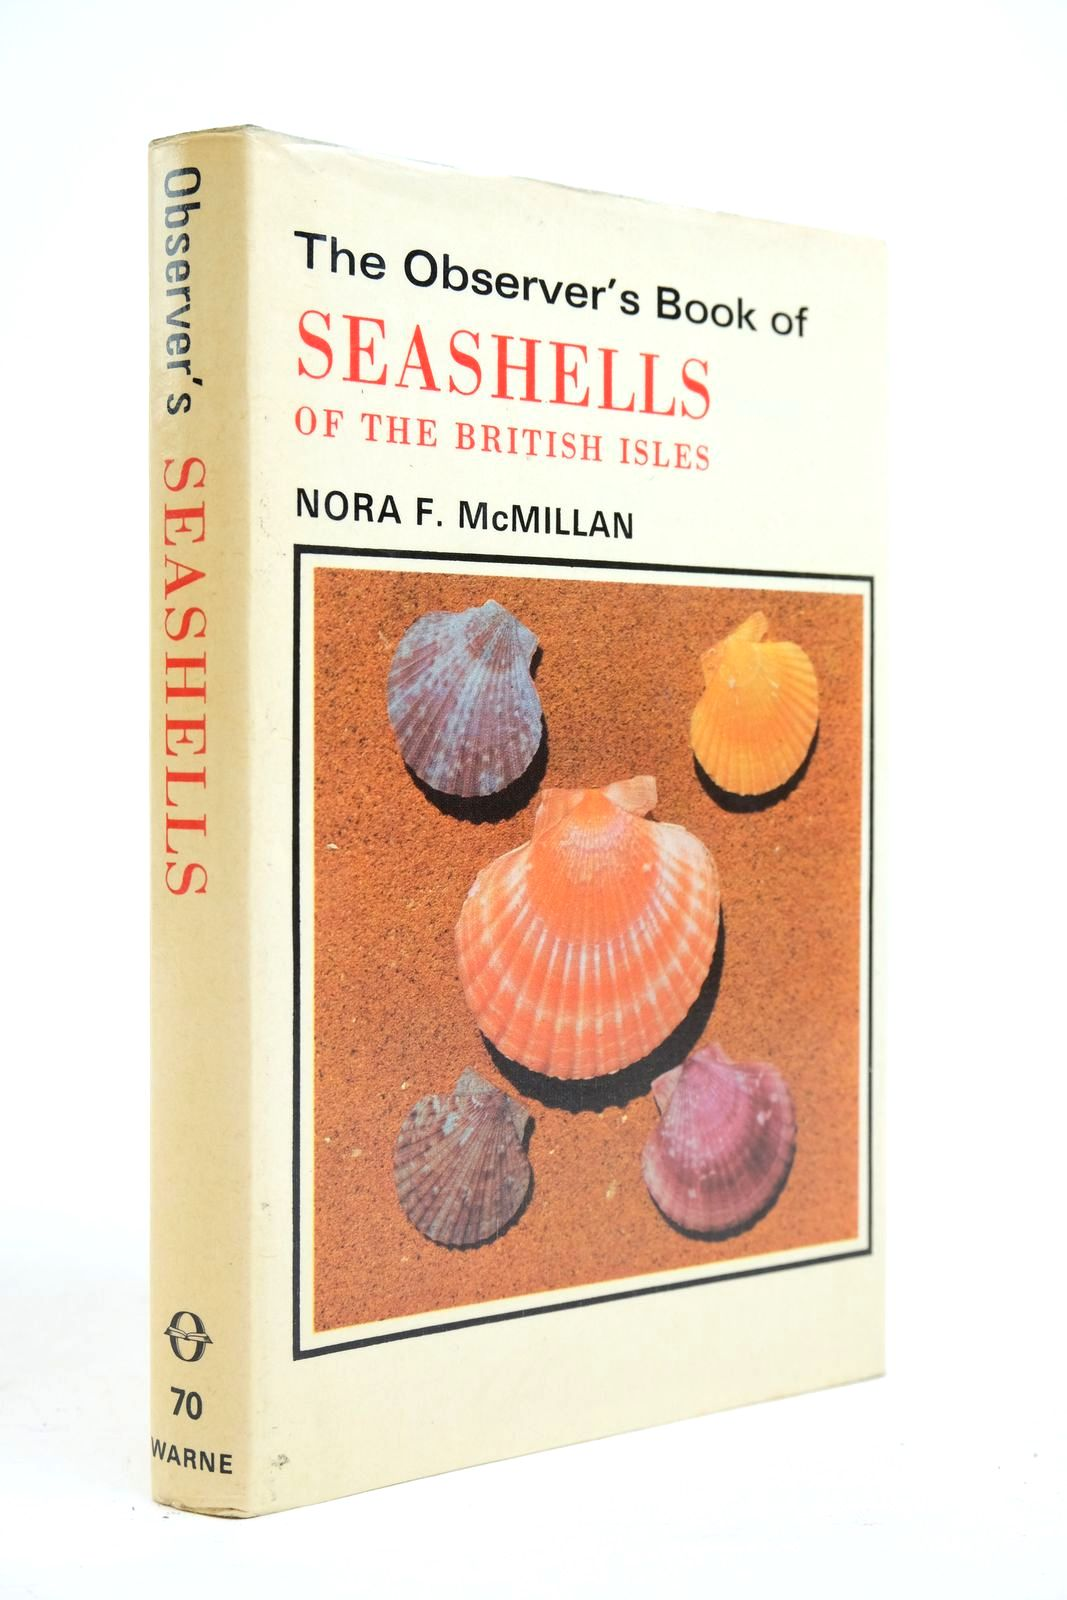 Photo of THE OBSERVER'S BOOK OF SEASHELLS OF THE BRITISH ISLES written by McMillan, Nora F. illustrated by Finlow, Bridget Clegg, John published by Frederick Warne & Co Ltd. (STOCK CODE: 2134659)  for sale by Stella & Rose's Books